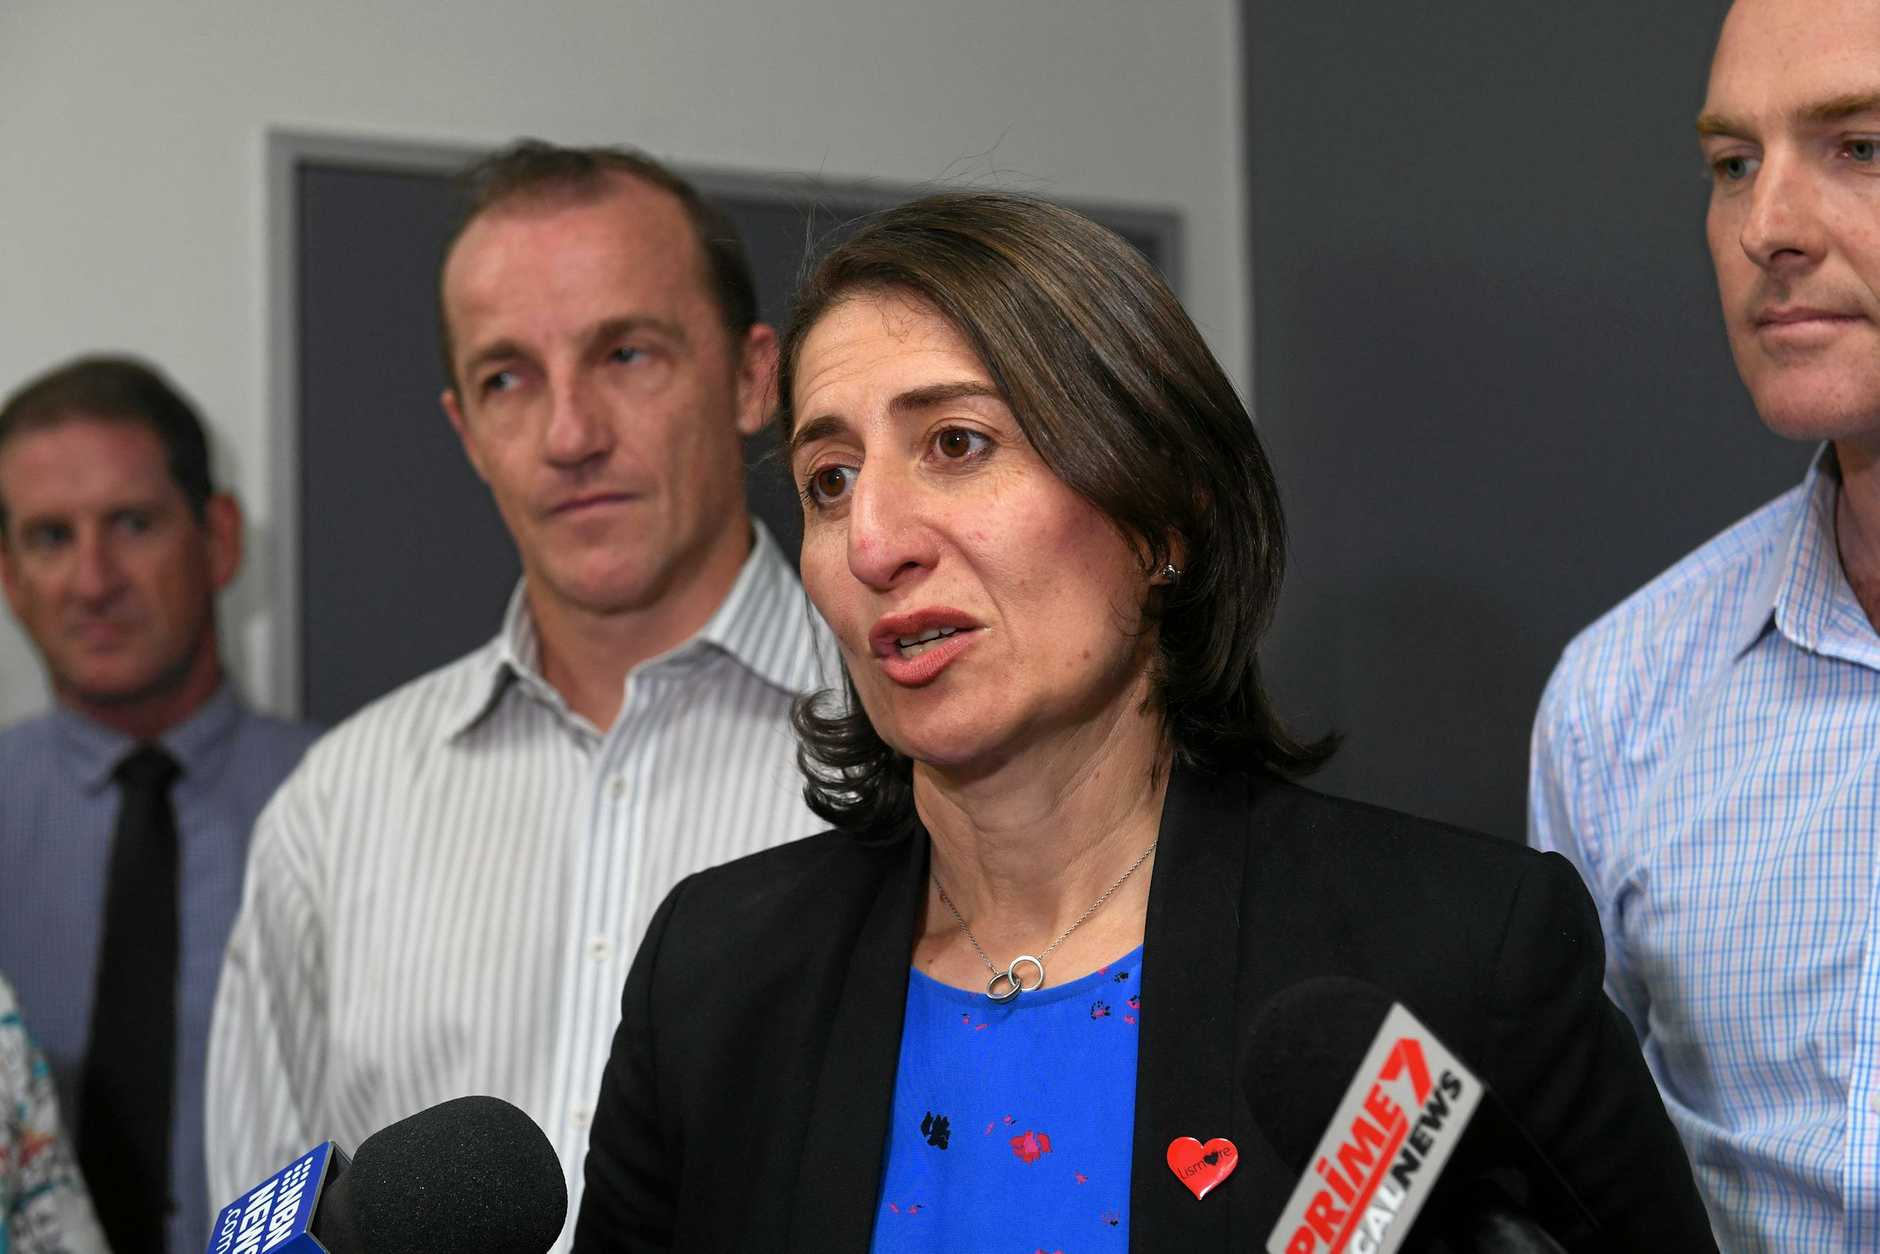 MEETING: NSW premier Gladys Berejiklian meets with Lismore mayor Isaac Smith and National's candidate for Lismore, Austin Curtin, as well as being harassed by protesters in Koala suites at the press conference site.